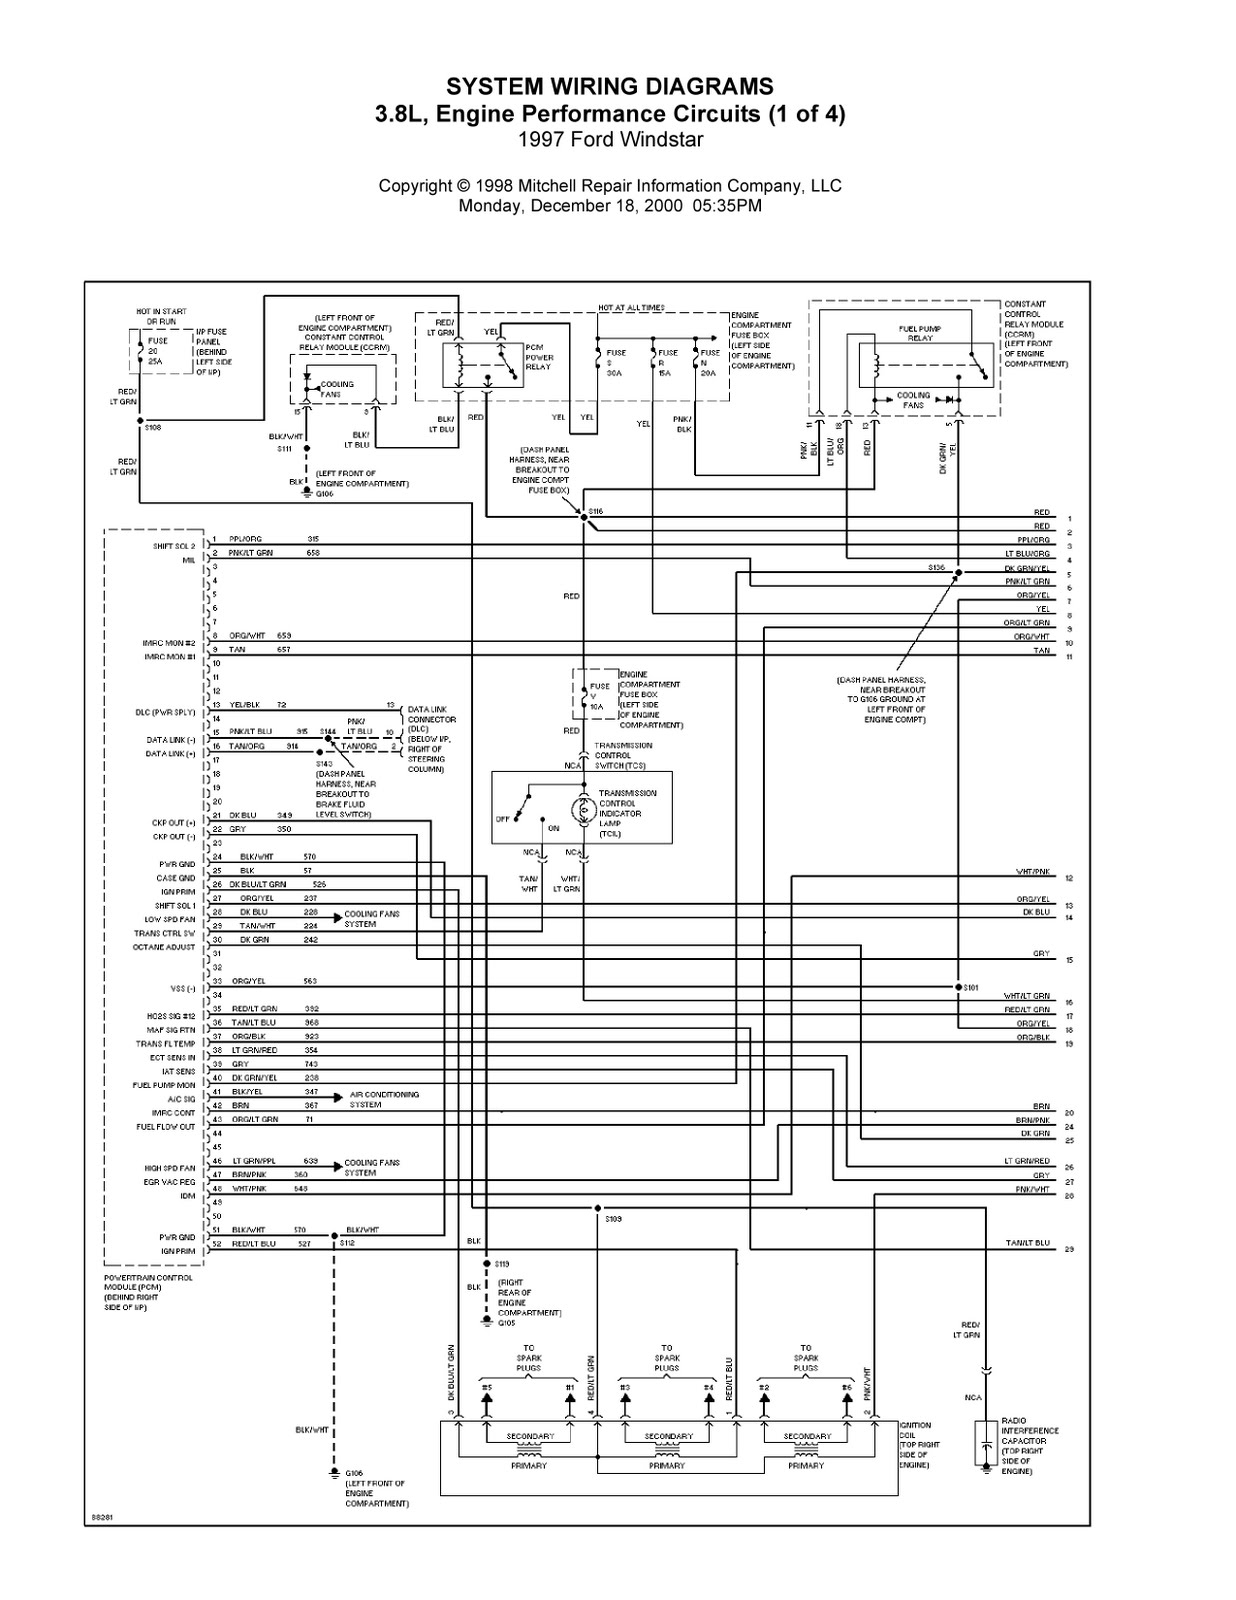 1999 Ford Windstar Wiring Diagram 2005 Honda Civic Car Stereo Radio 2000